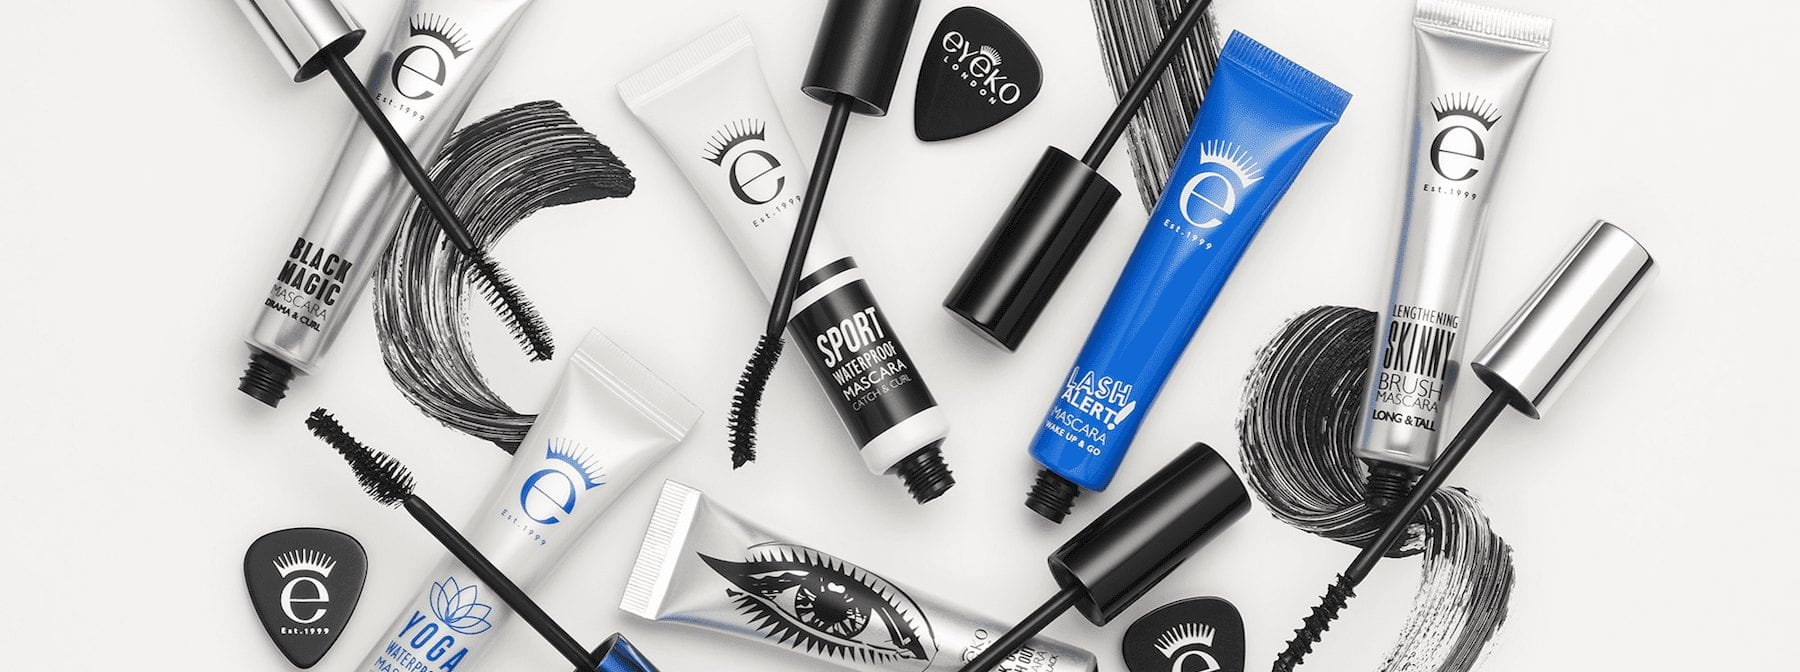 Eyeko Combines Korean Technology and Pro-Vitamin Formulas in One Waste-Free Tube